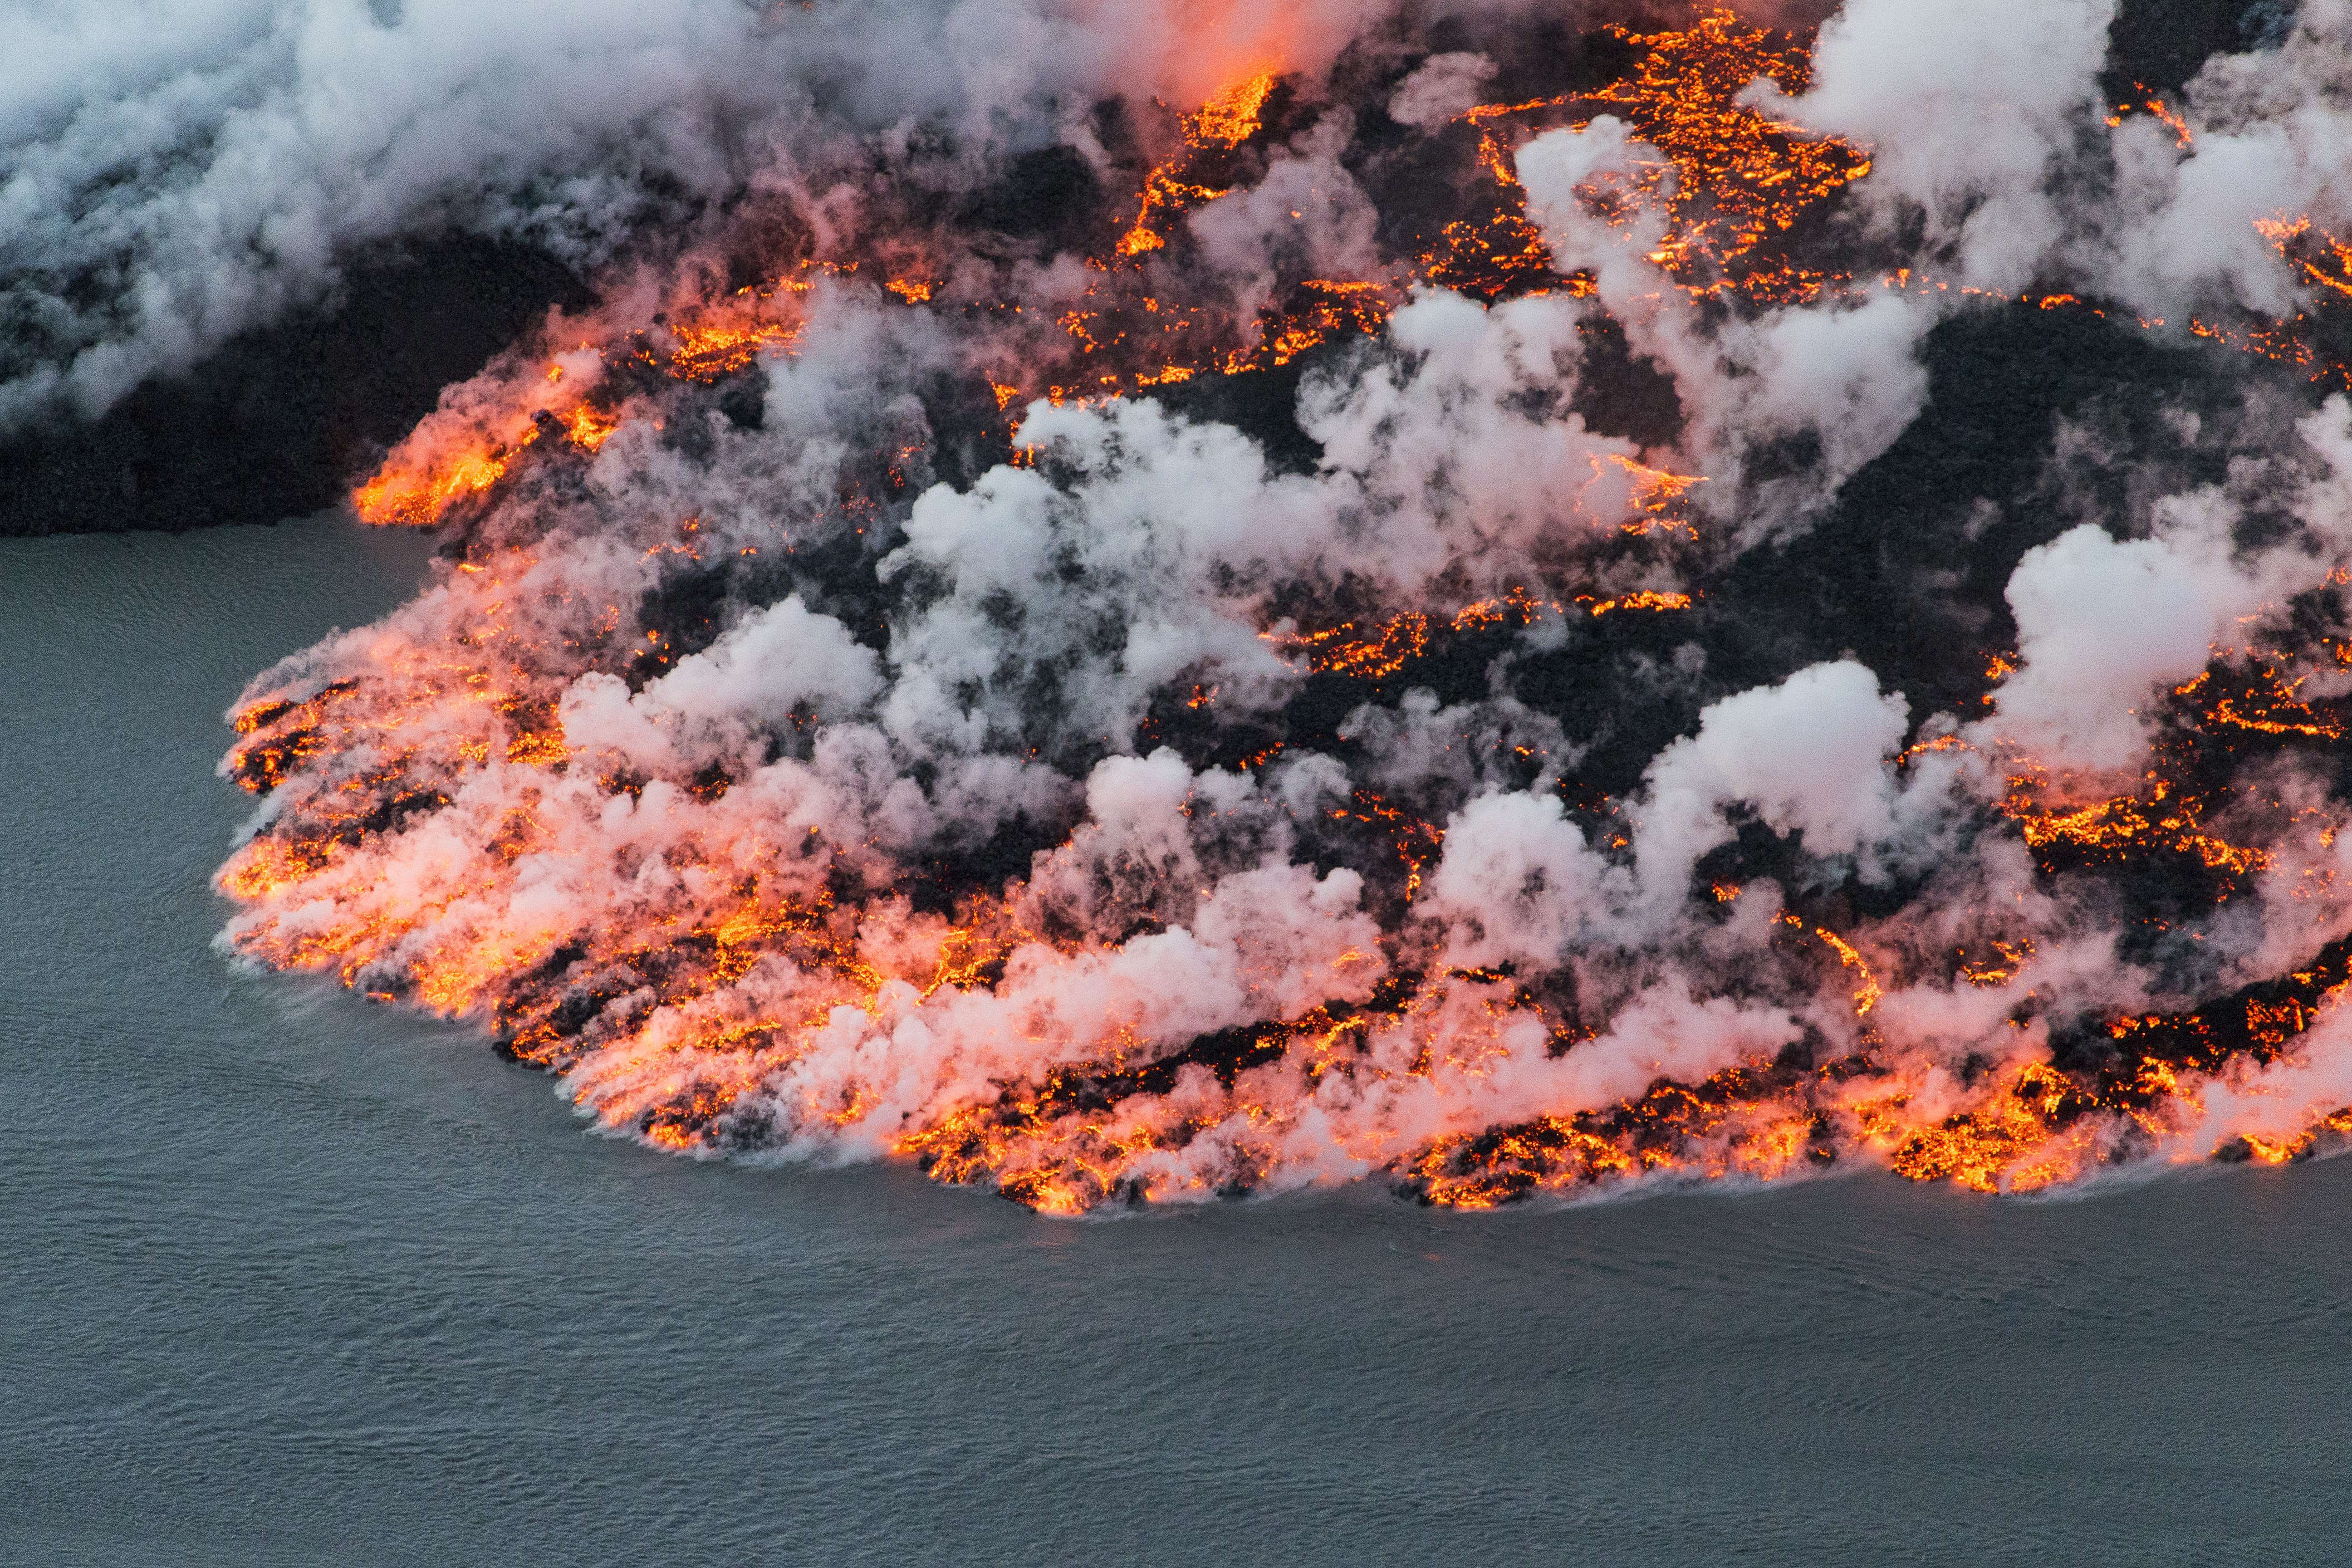 An aerial picture taken on September 14, 2014 shows lava flowing out of the Bardarbunga volcano in southeast Iceland. (Bernard Meric/AFP/Getty Images)